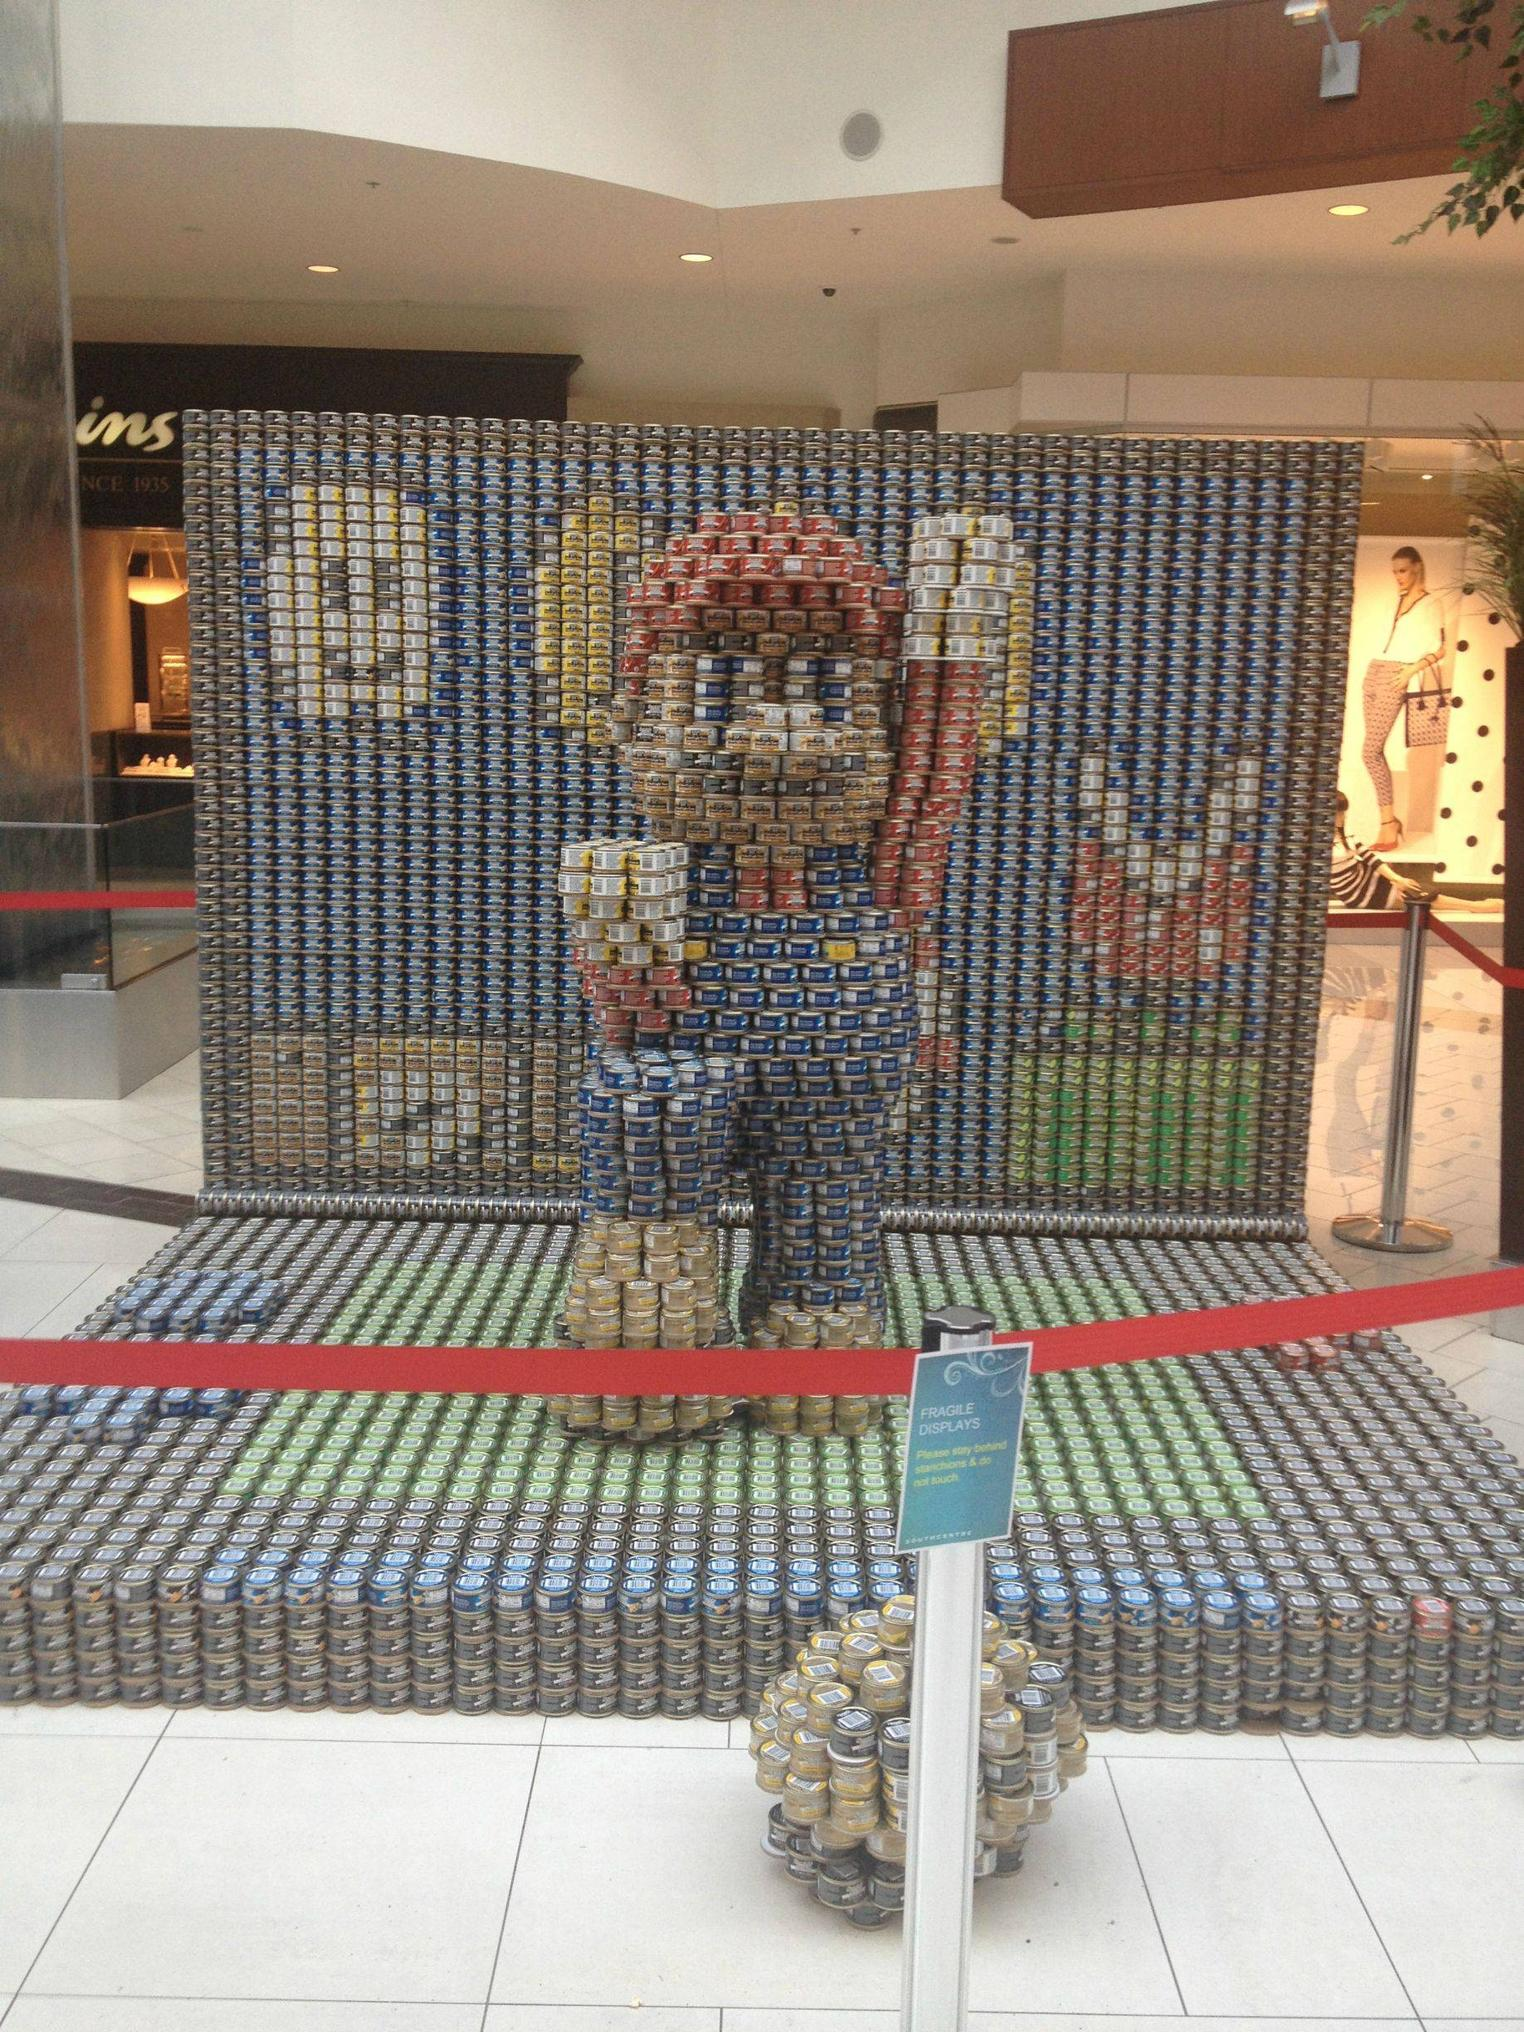 Super Mario Canned Food Display